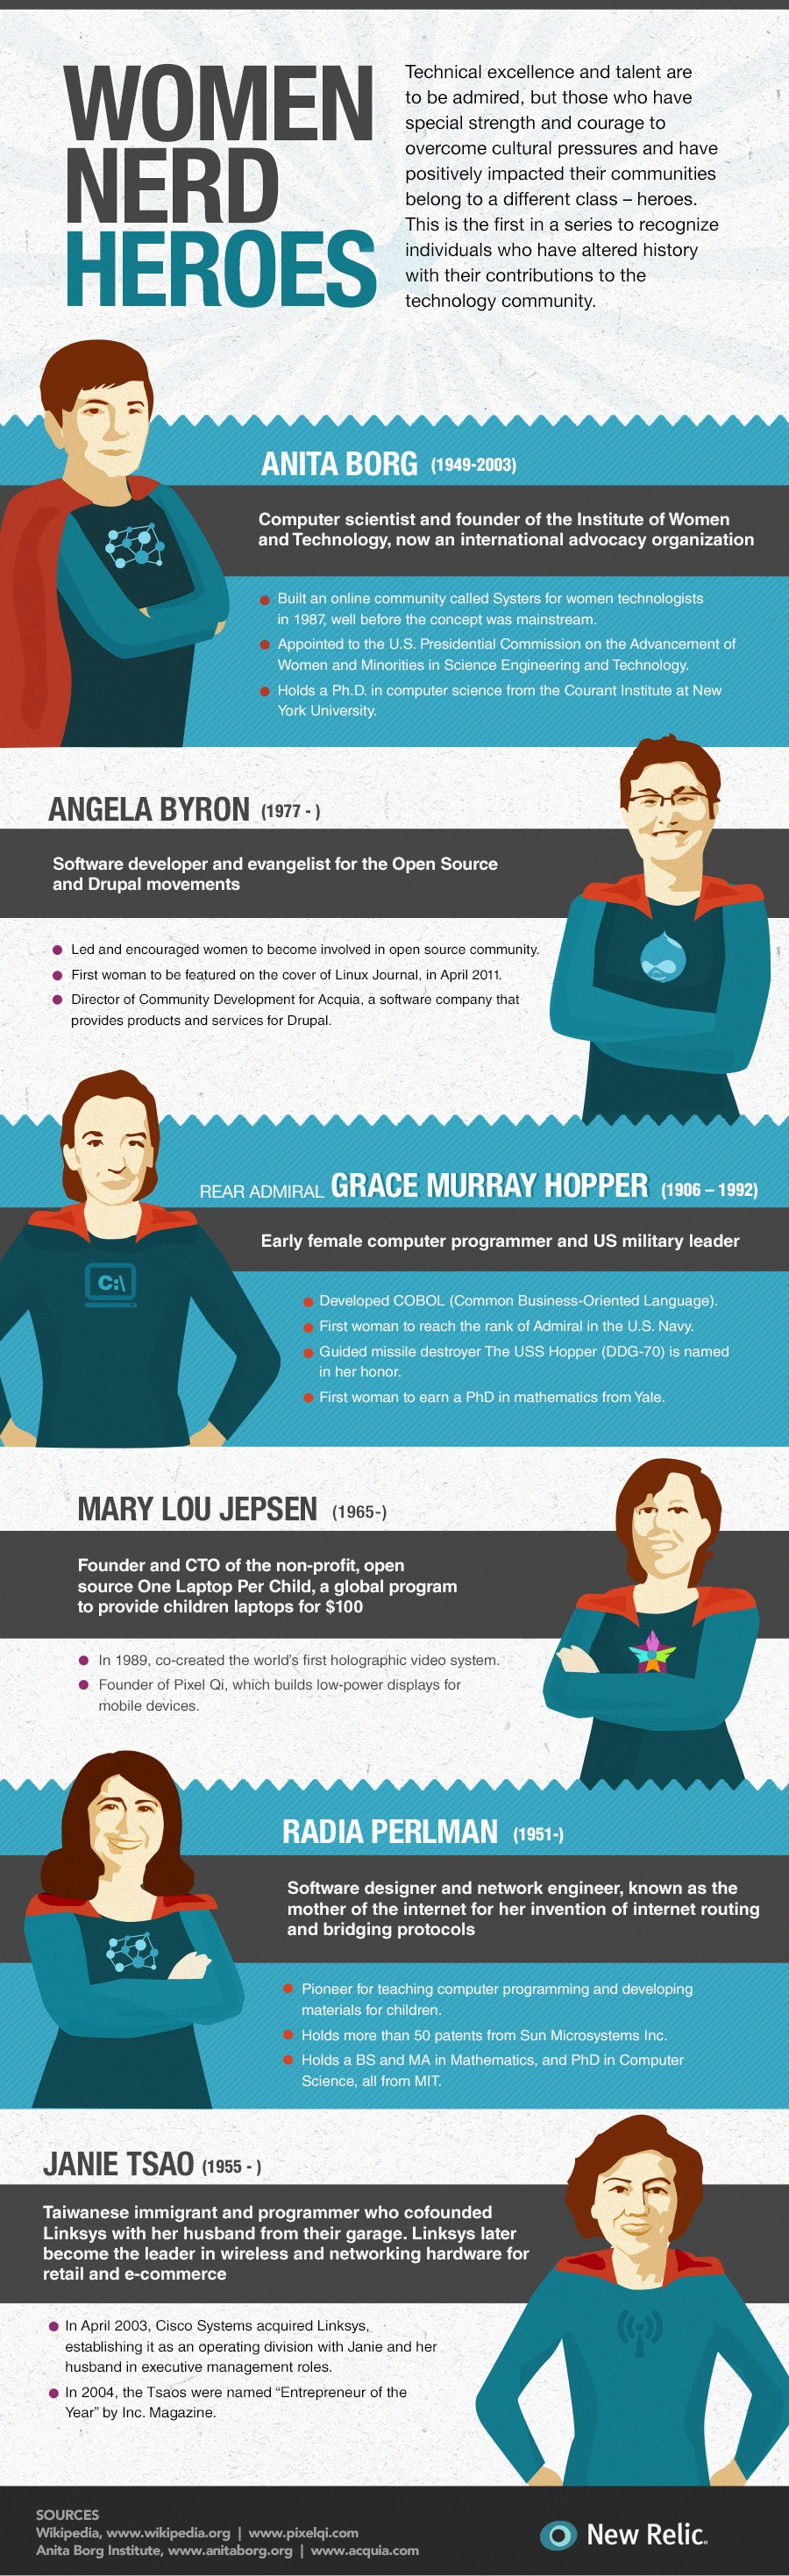 female-nerds-altered-history-infographic